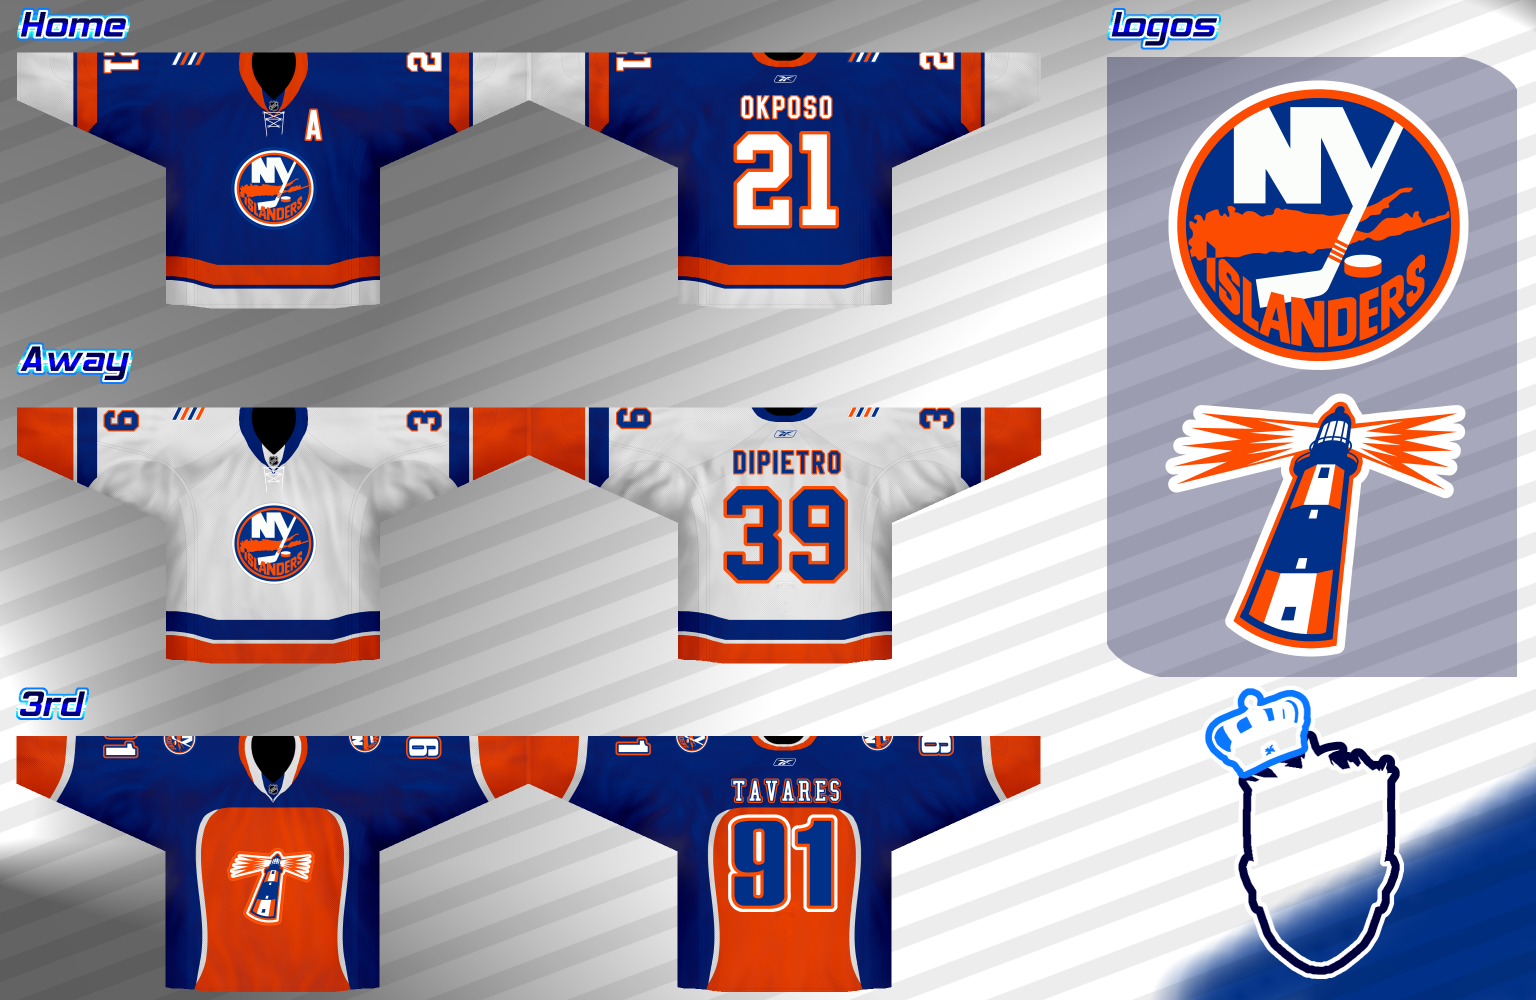 new york islanders iphone wallpaper new york rangers wallpaper new 1536x1000